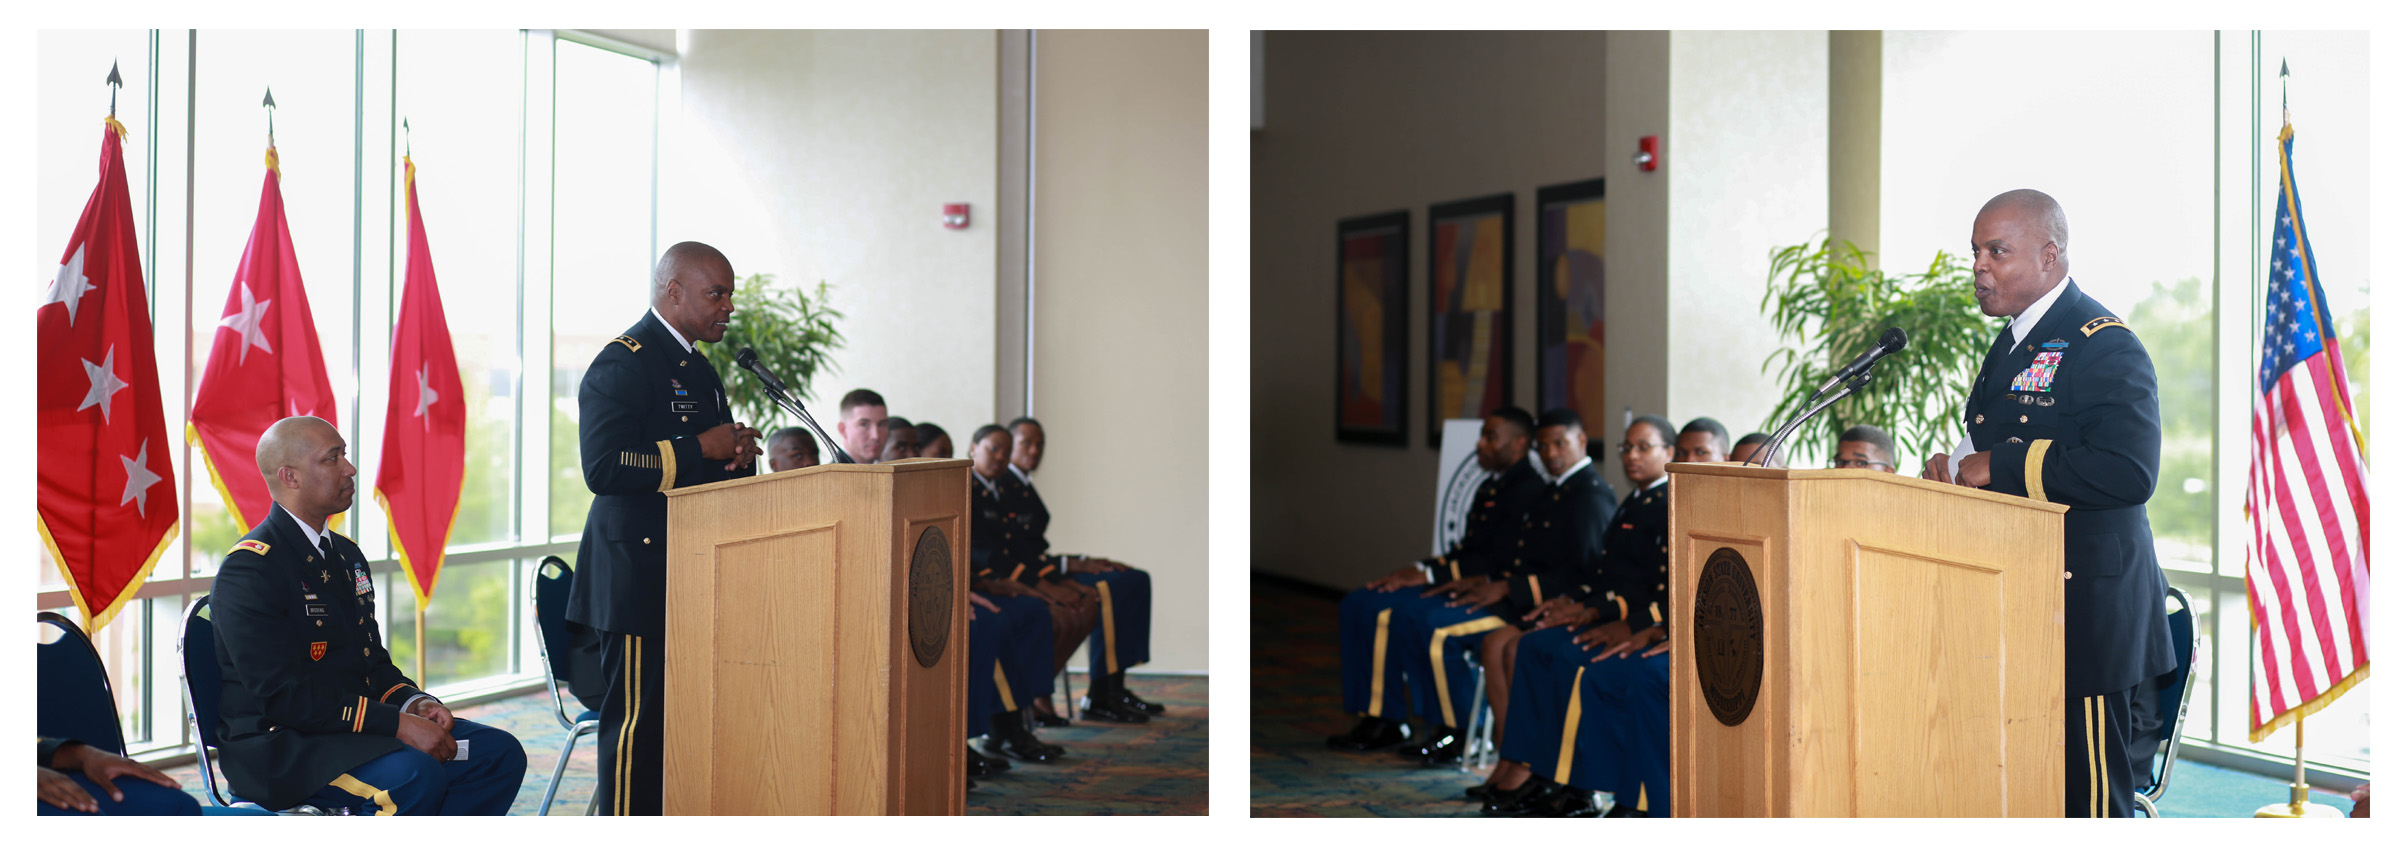 "Lt. Gen. Stephen M. Twitty, 38th commander of the First Army, addresses cadets preparing to commission as second lieutenants. He told them, ""You could walk out this door and go from a student to a true lieutenant,"" serving in war-torn countries. He told the soon-to-be officers that times were starkly different from when he sat the same seats as the cadets. ""Today, we have 150,000 service members deployed abroad in combat or on the edge of combat. We are a nation at war."" (Photo by Kentrice S. Rush/JSU)"